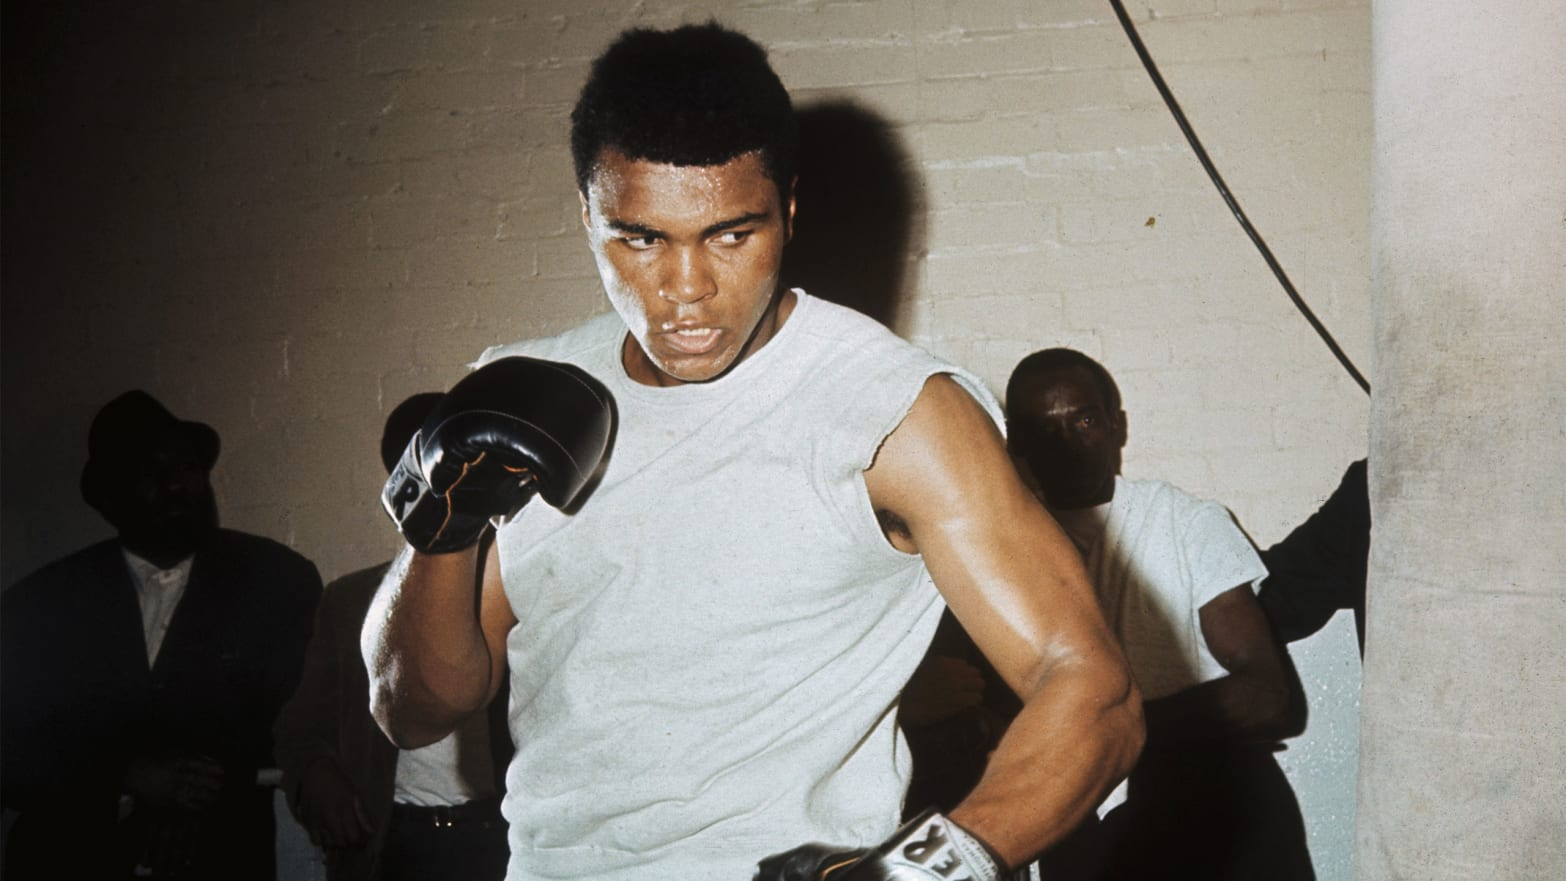 Muhammad Ali Was the Greatest but That's Not the Whole Story